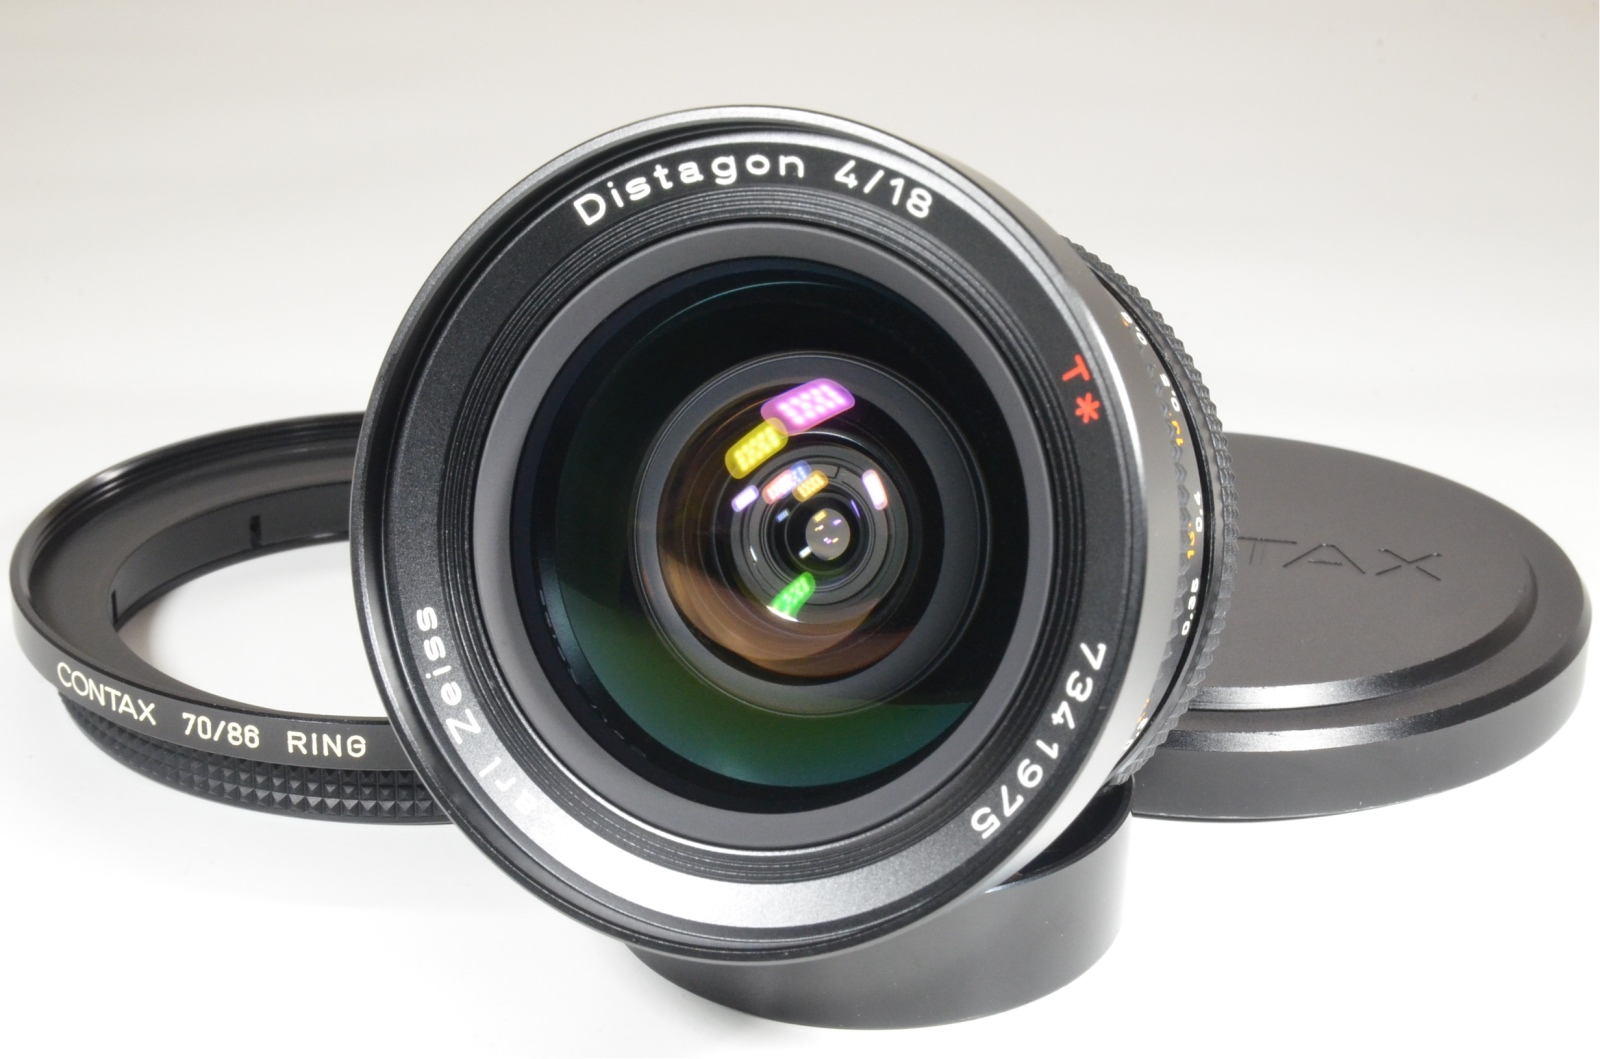 contax carl zeiss distagon t* 18mm f4 mmj with 70/86 ring